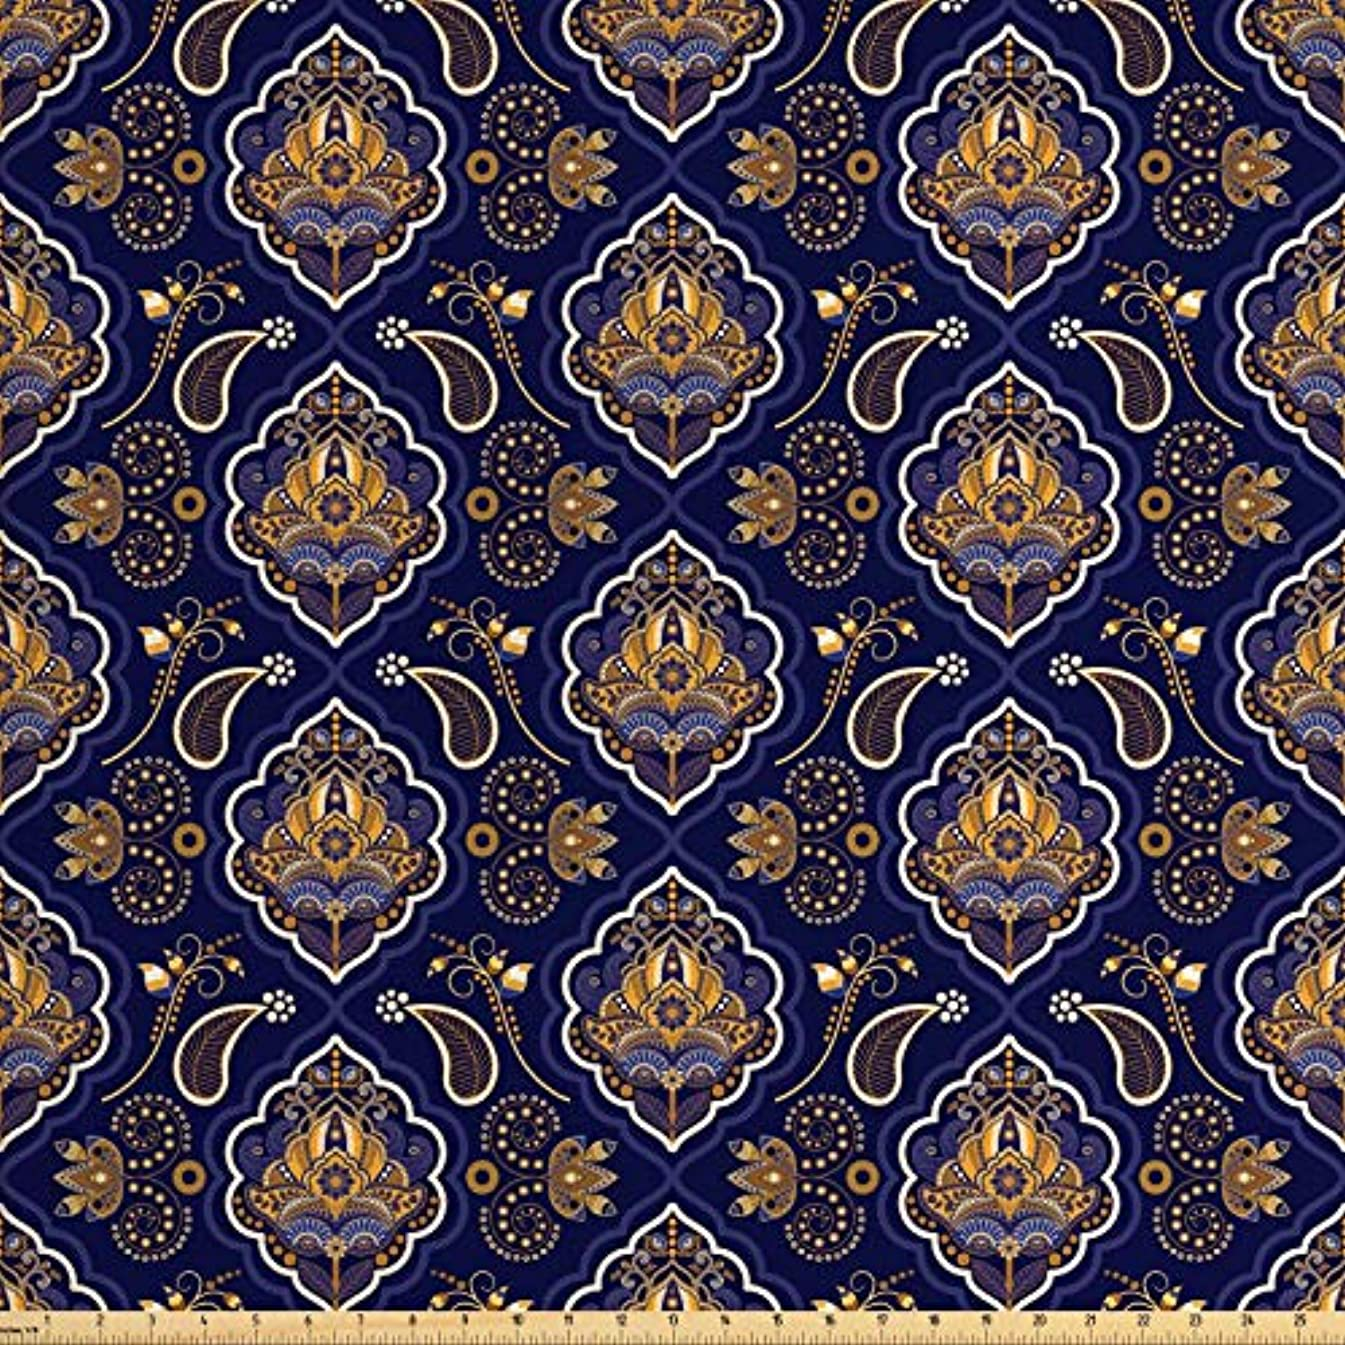 Lunarable Paisley Fabric by The Yard, Ethnic Tribal Pattern with Arabesque Effects and Floral Ornaments Print, Decorative Fabric for Upholstery and Home Accents, 1 Yard, Indigo and Ginger